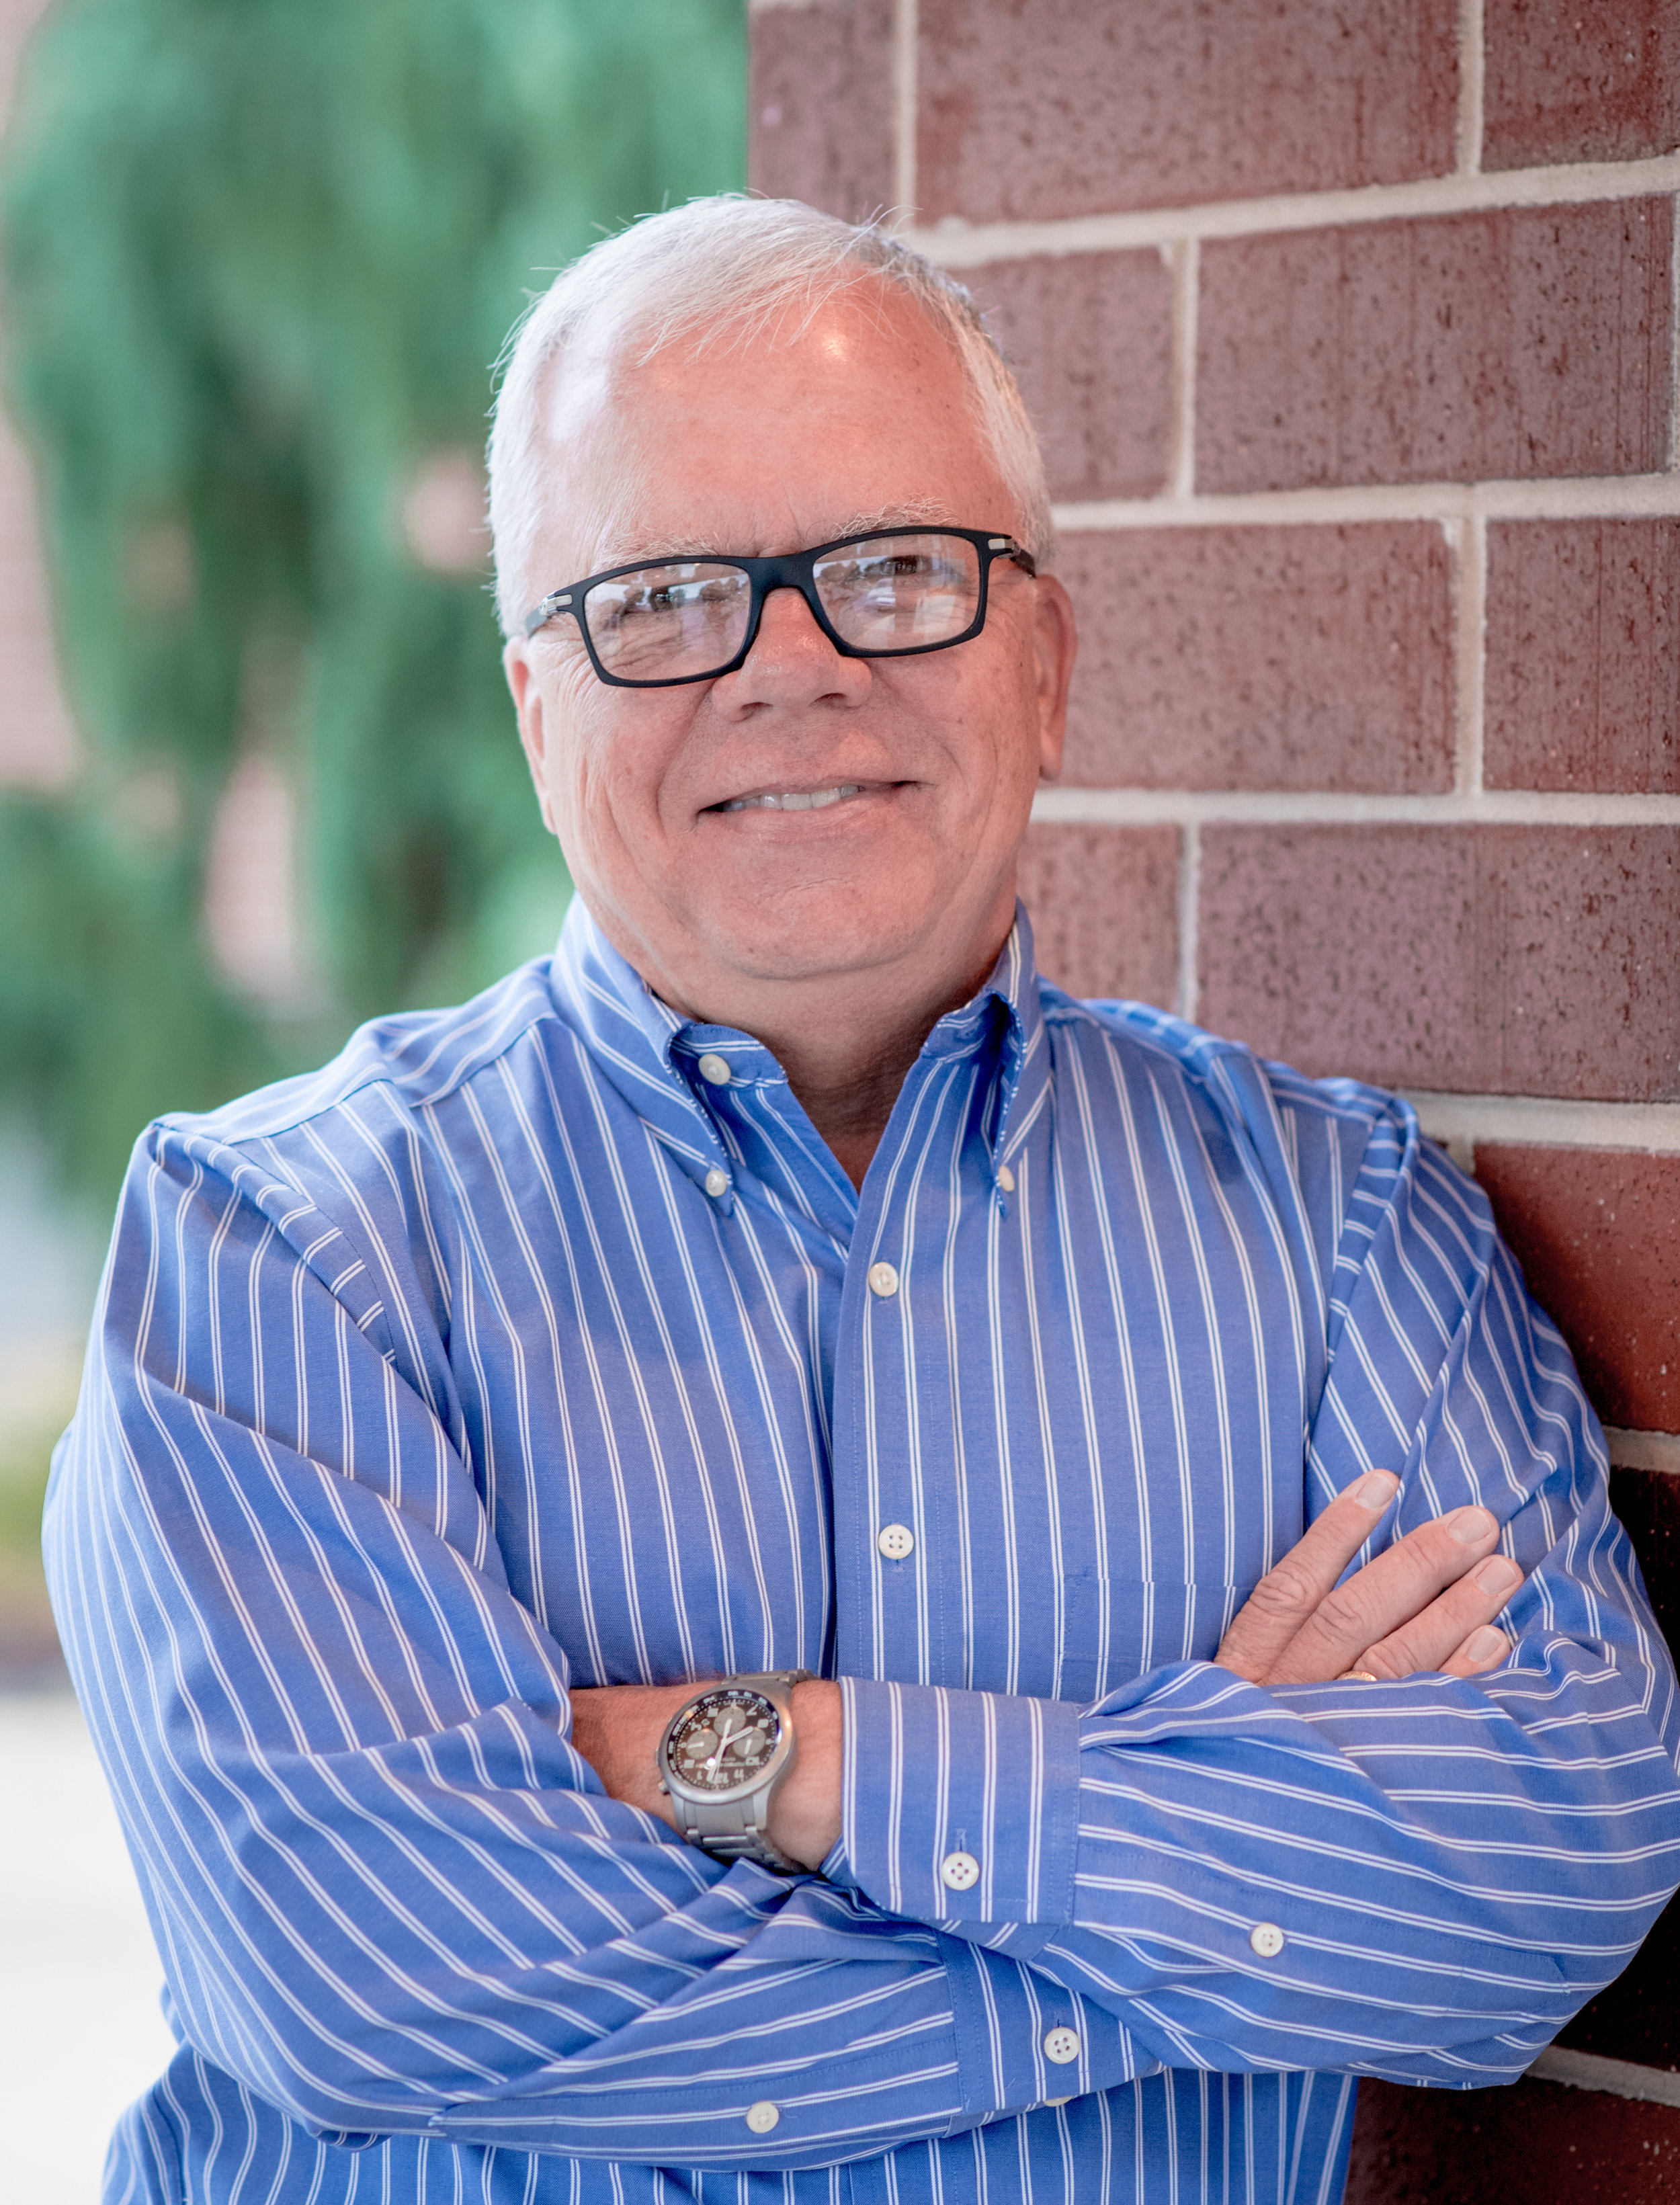 Mark Salyer, MBA, CPA, Senior Consultant - The Center Consulting Group - Leadership Coaching and Organizational Consulting for Businesses, Non-Profits, and Churches